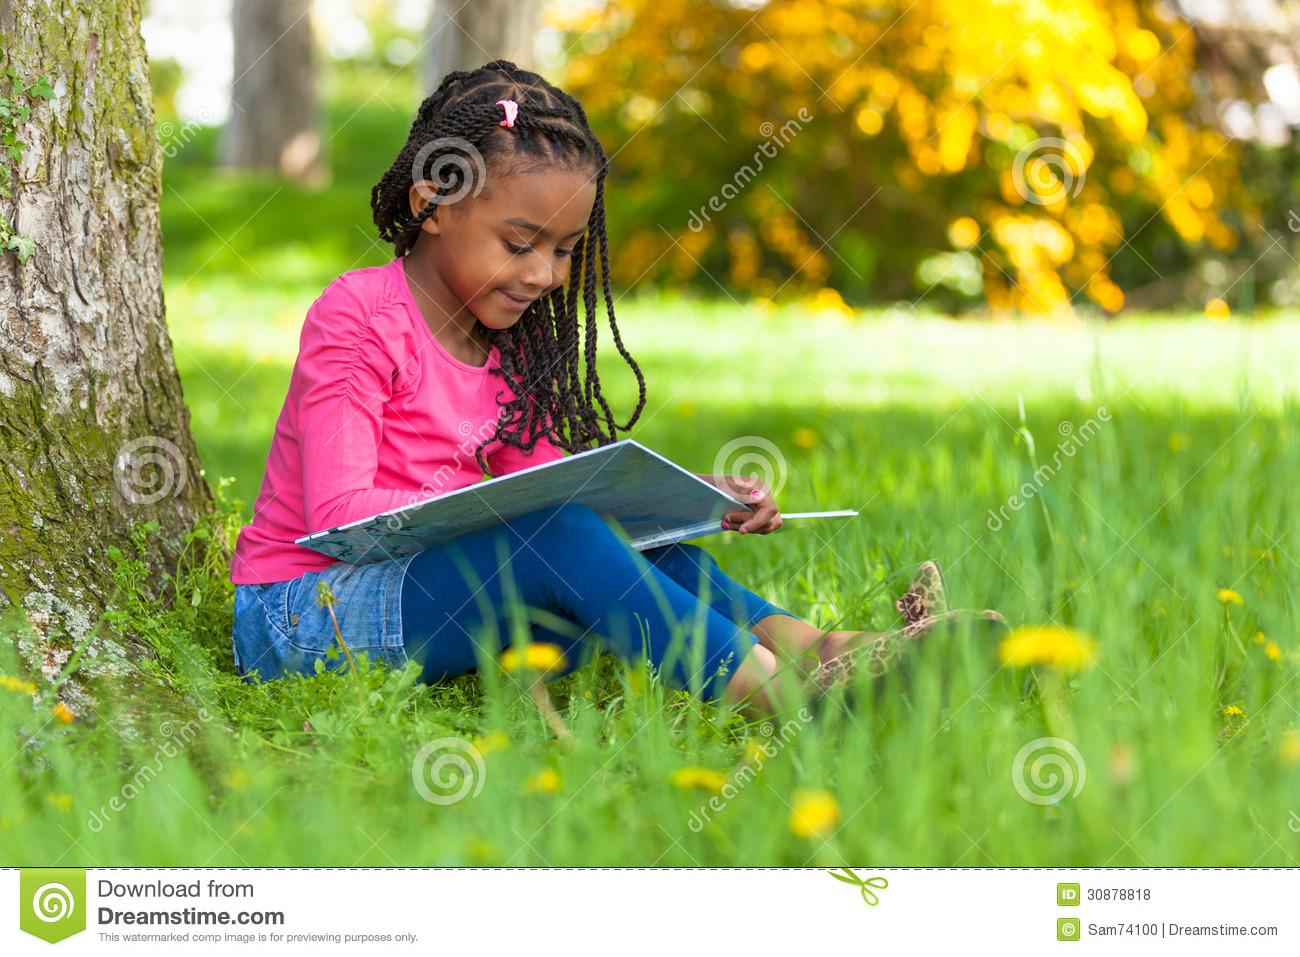 Outdoor Portrait Of A Cute Young Black Little Girl Reading